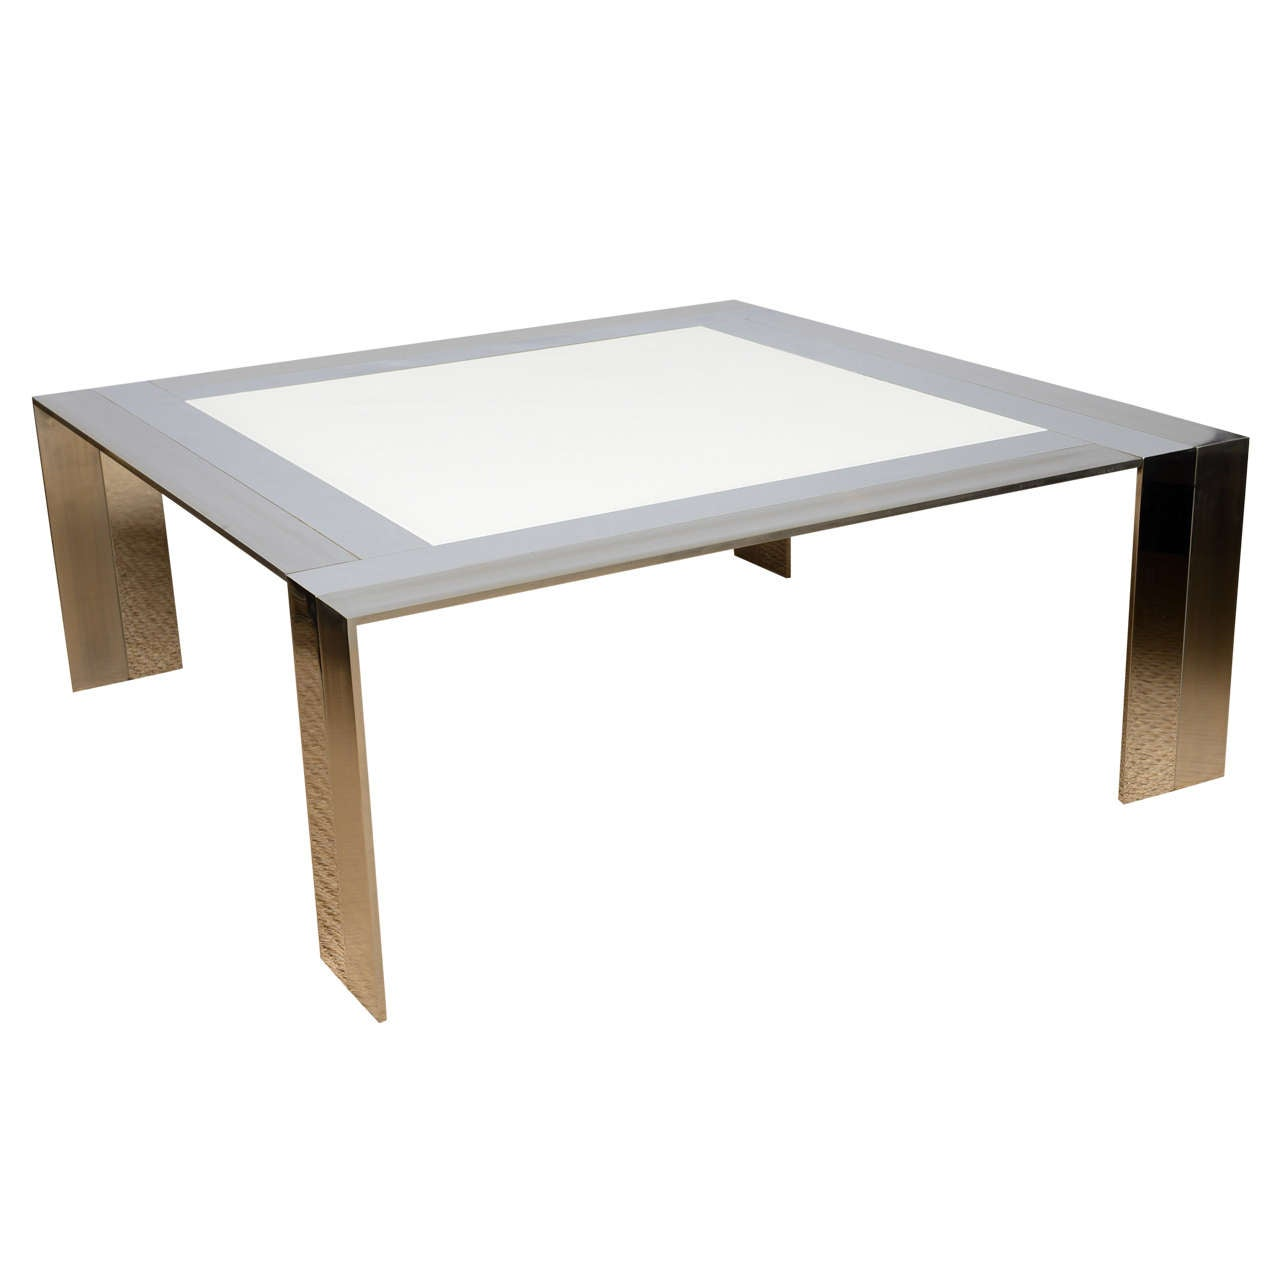 Italian square stainless steel and white glass square cocktail table for sale at 1stdibs Metal square coffee table